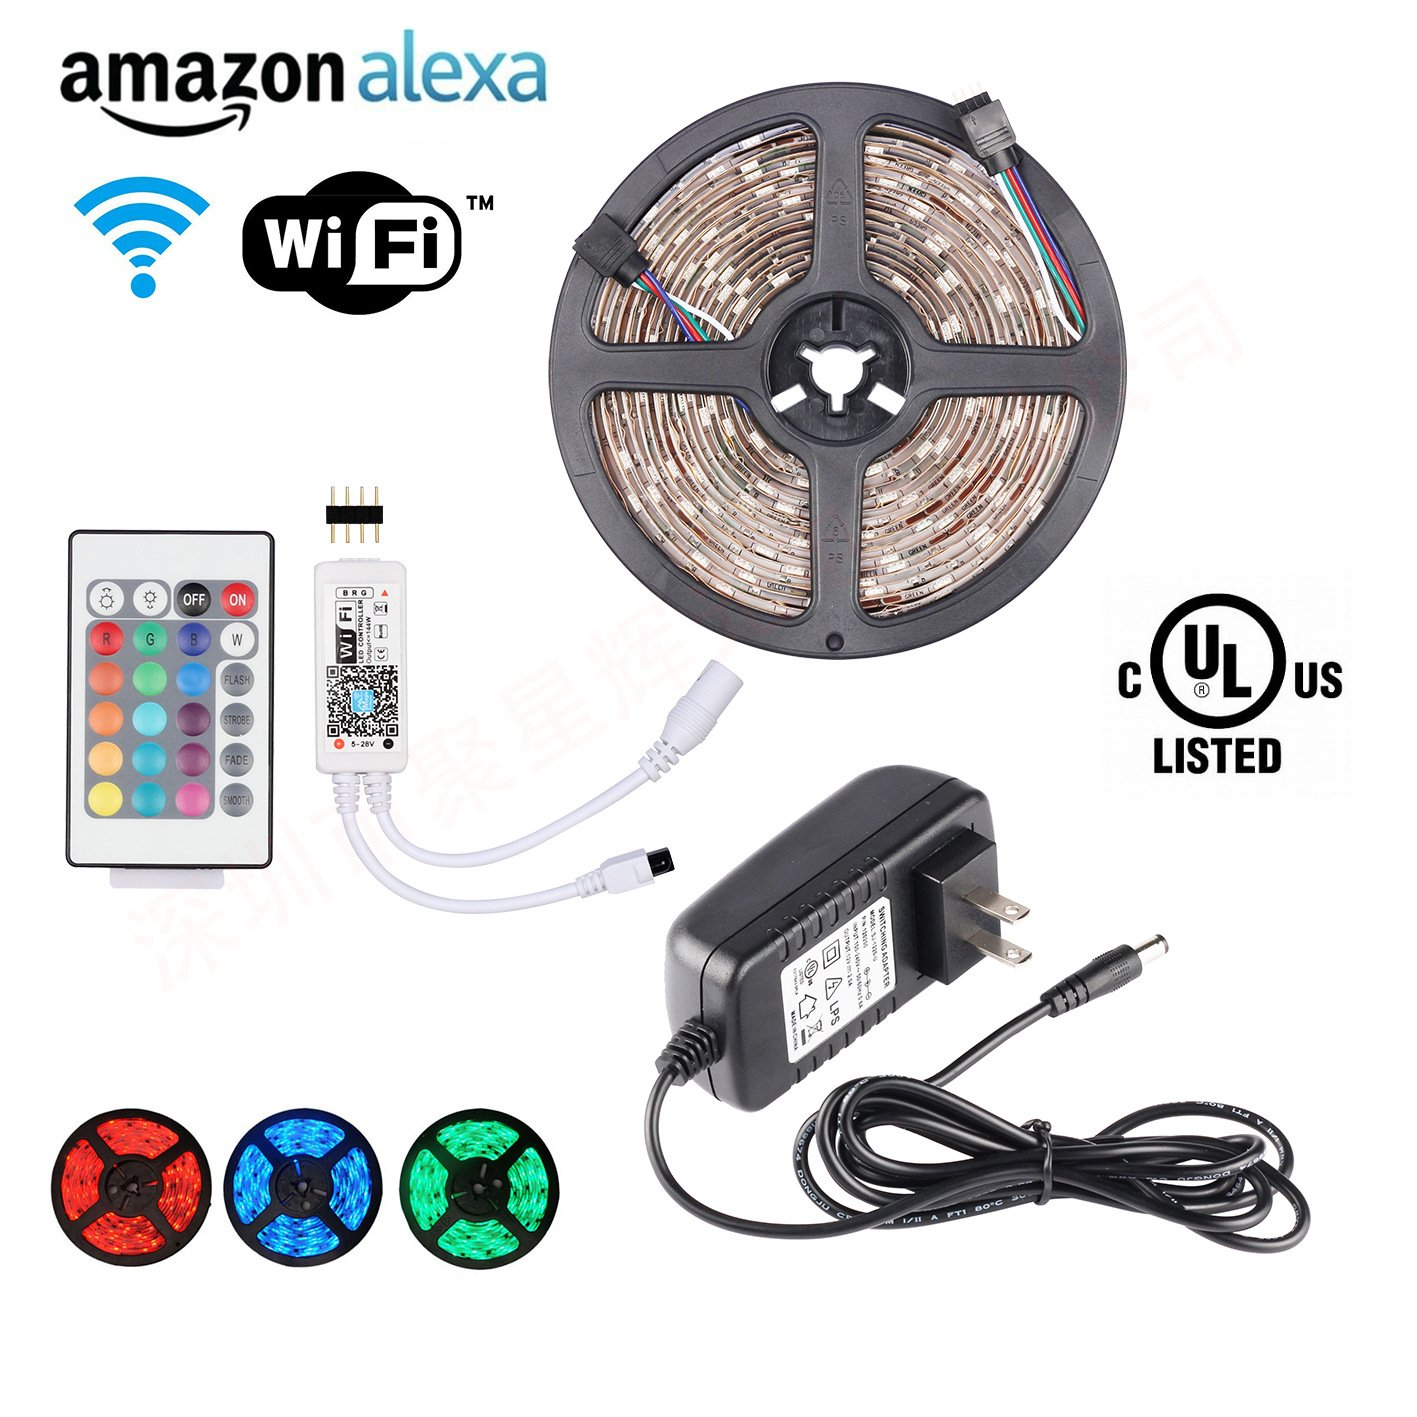 Smart LED Strip Lights-WiFi Controlled UL LED Strip Light Kit 16.4ft 150leds 5050 Waterproof IP65 LED Lights Compatible with Alexa, Google Home, Nest, Android and iOS System